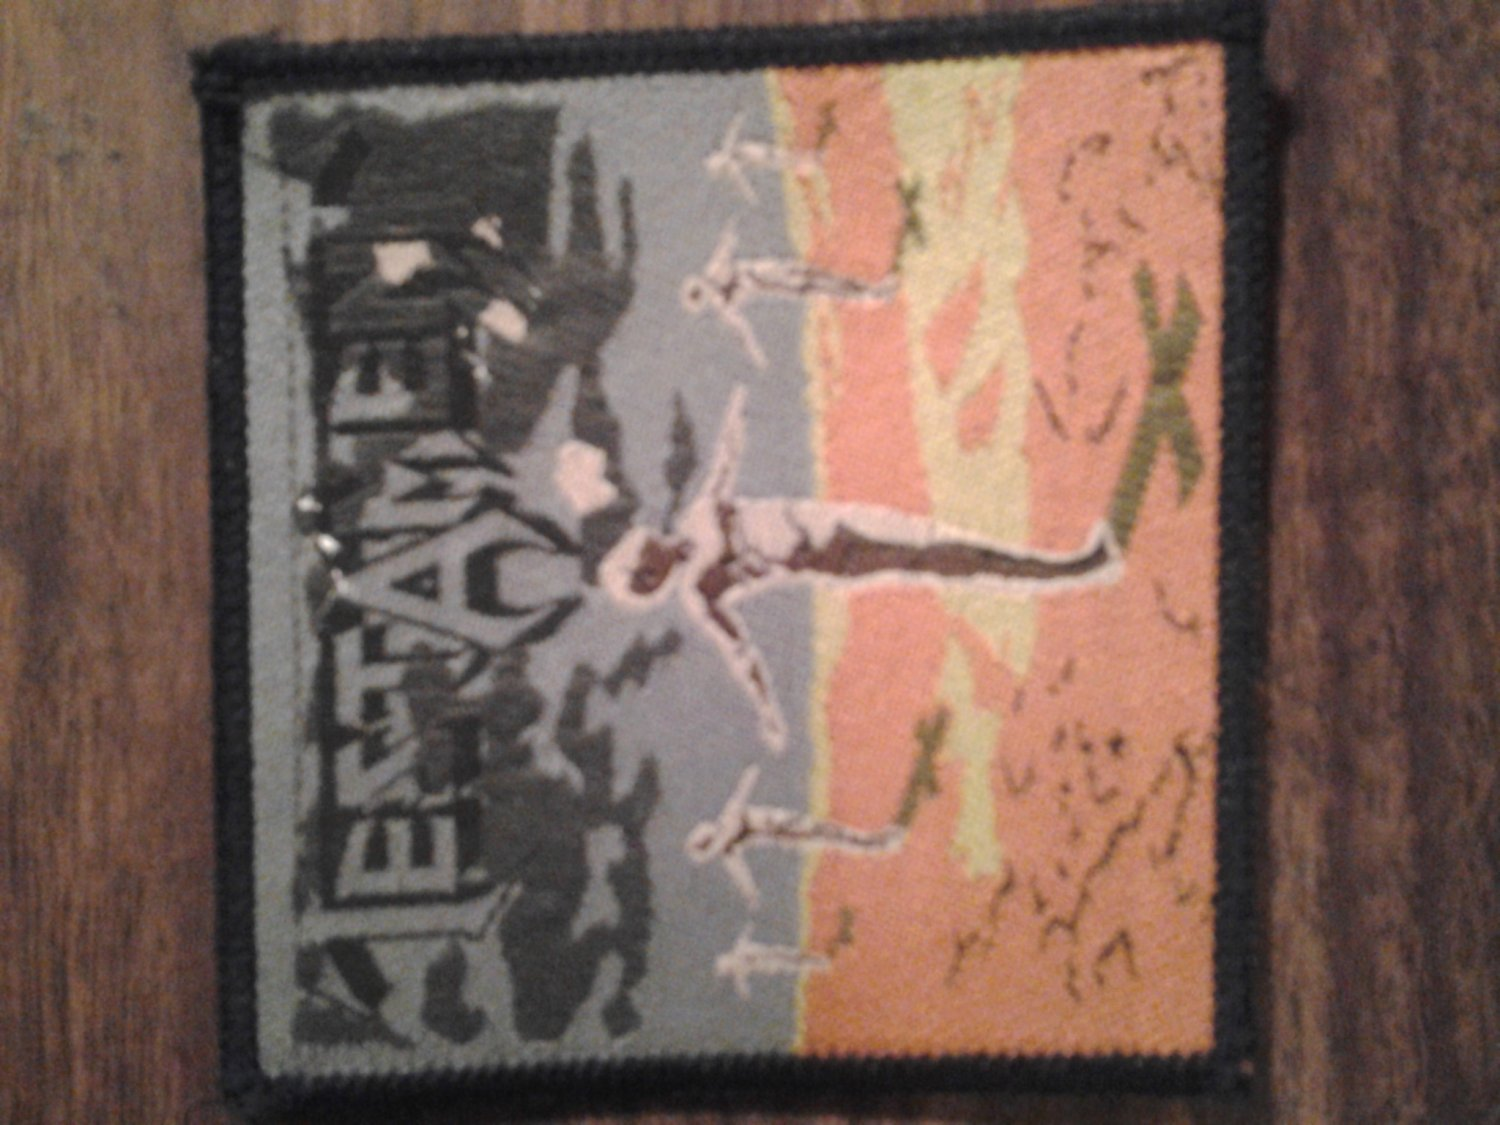 TESTAMENT sew-on PATCH Practice What You Preach album art VINTAGE